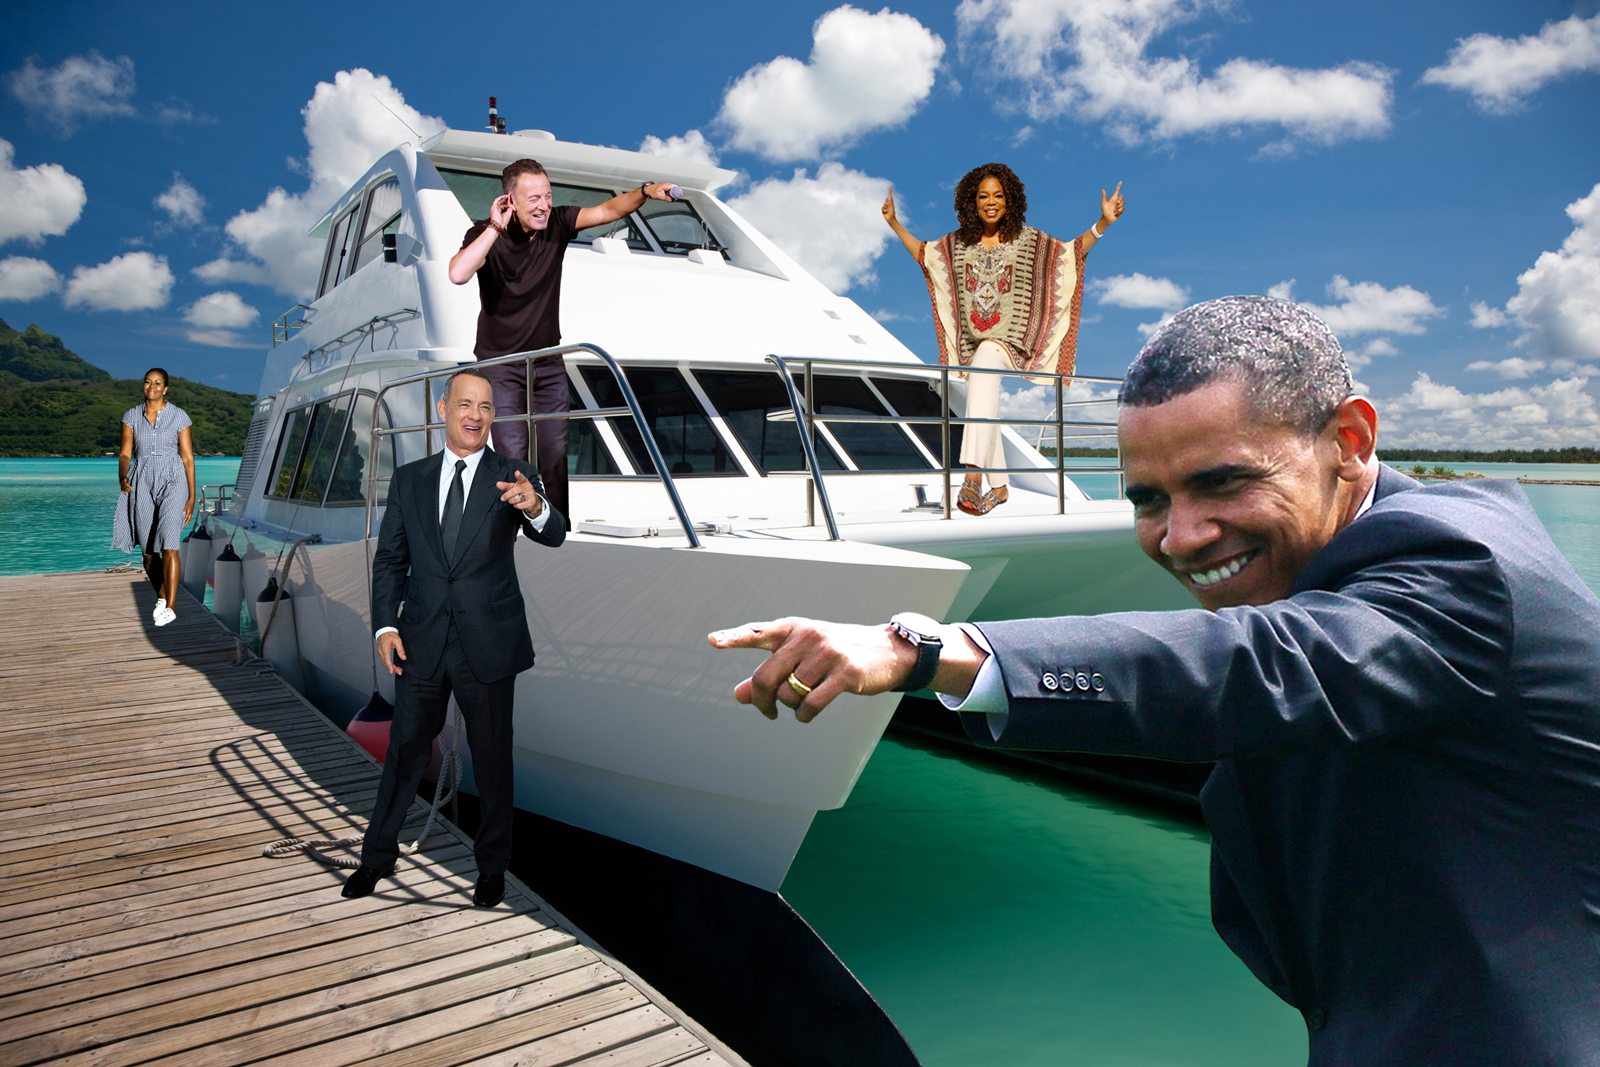 Obama, Oprah, Tom Hanks, and Bruce Springsteen All Went on Vacation Together